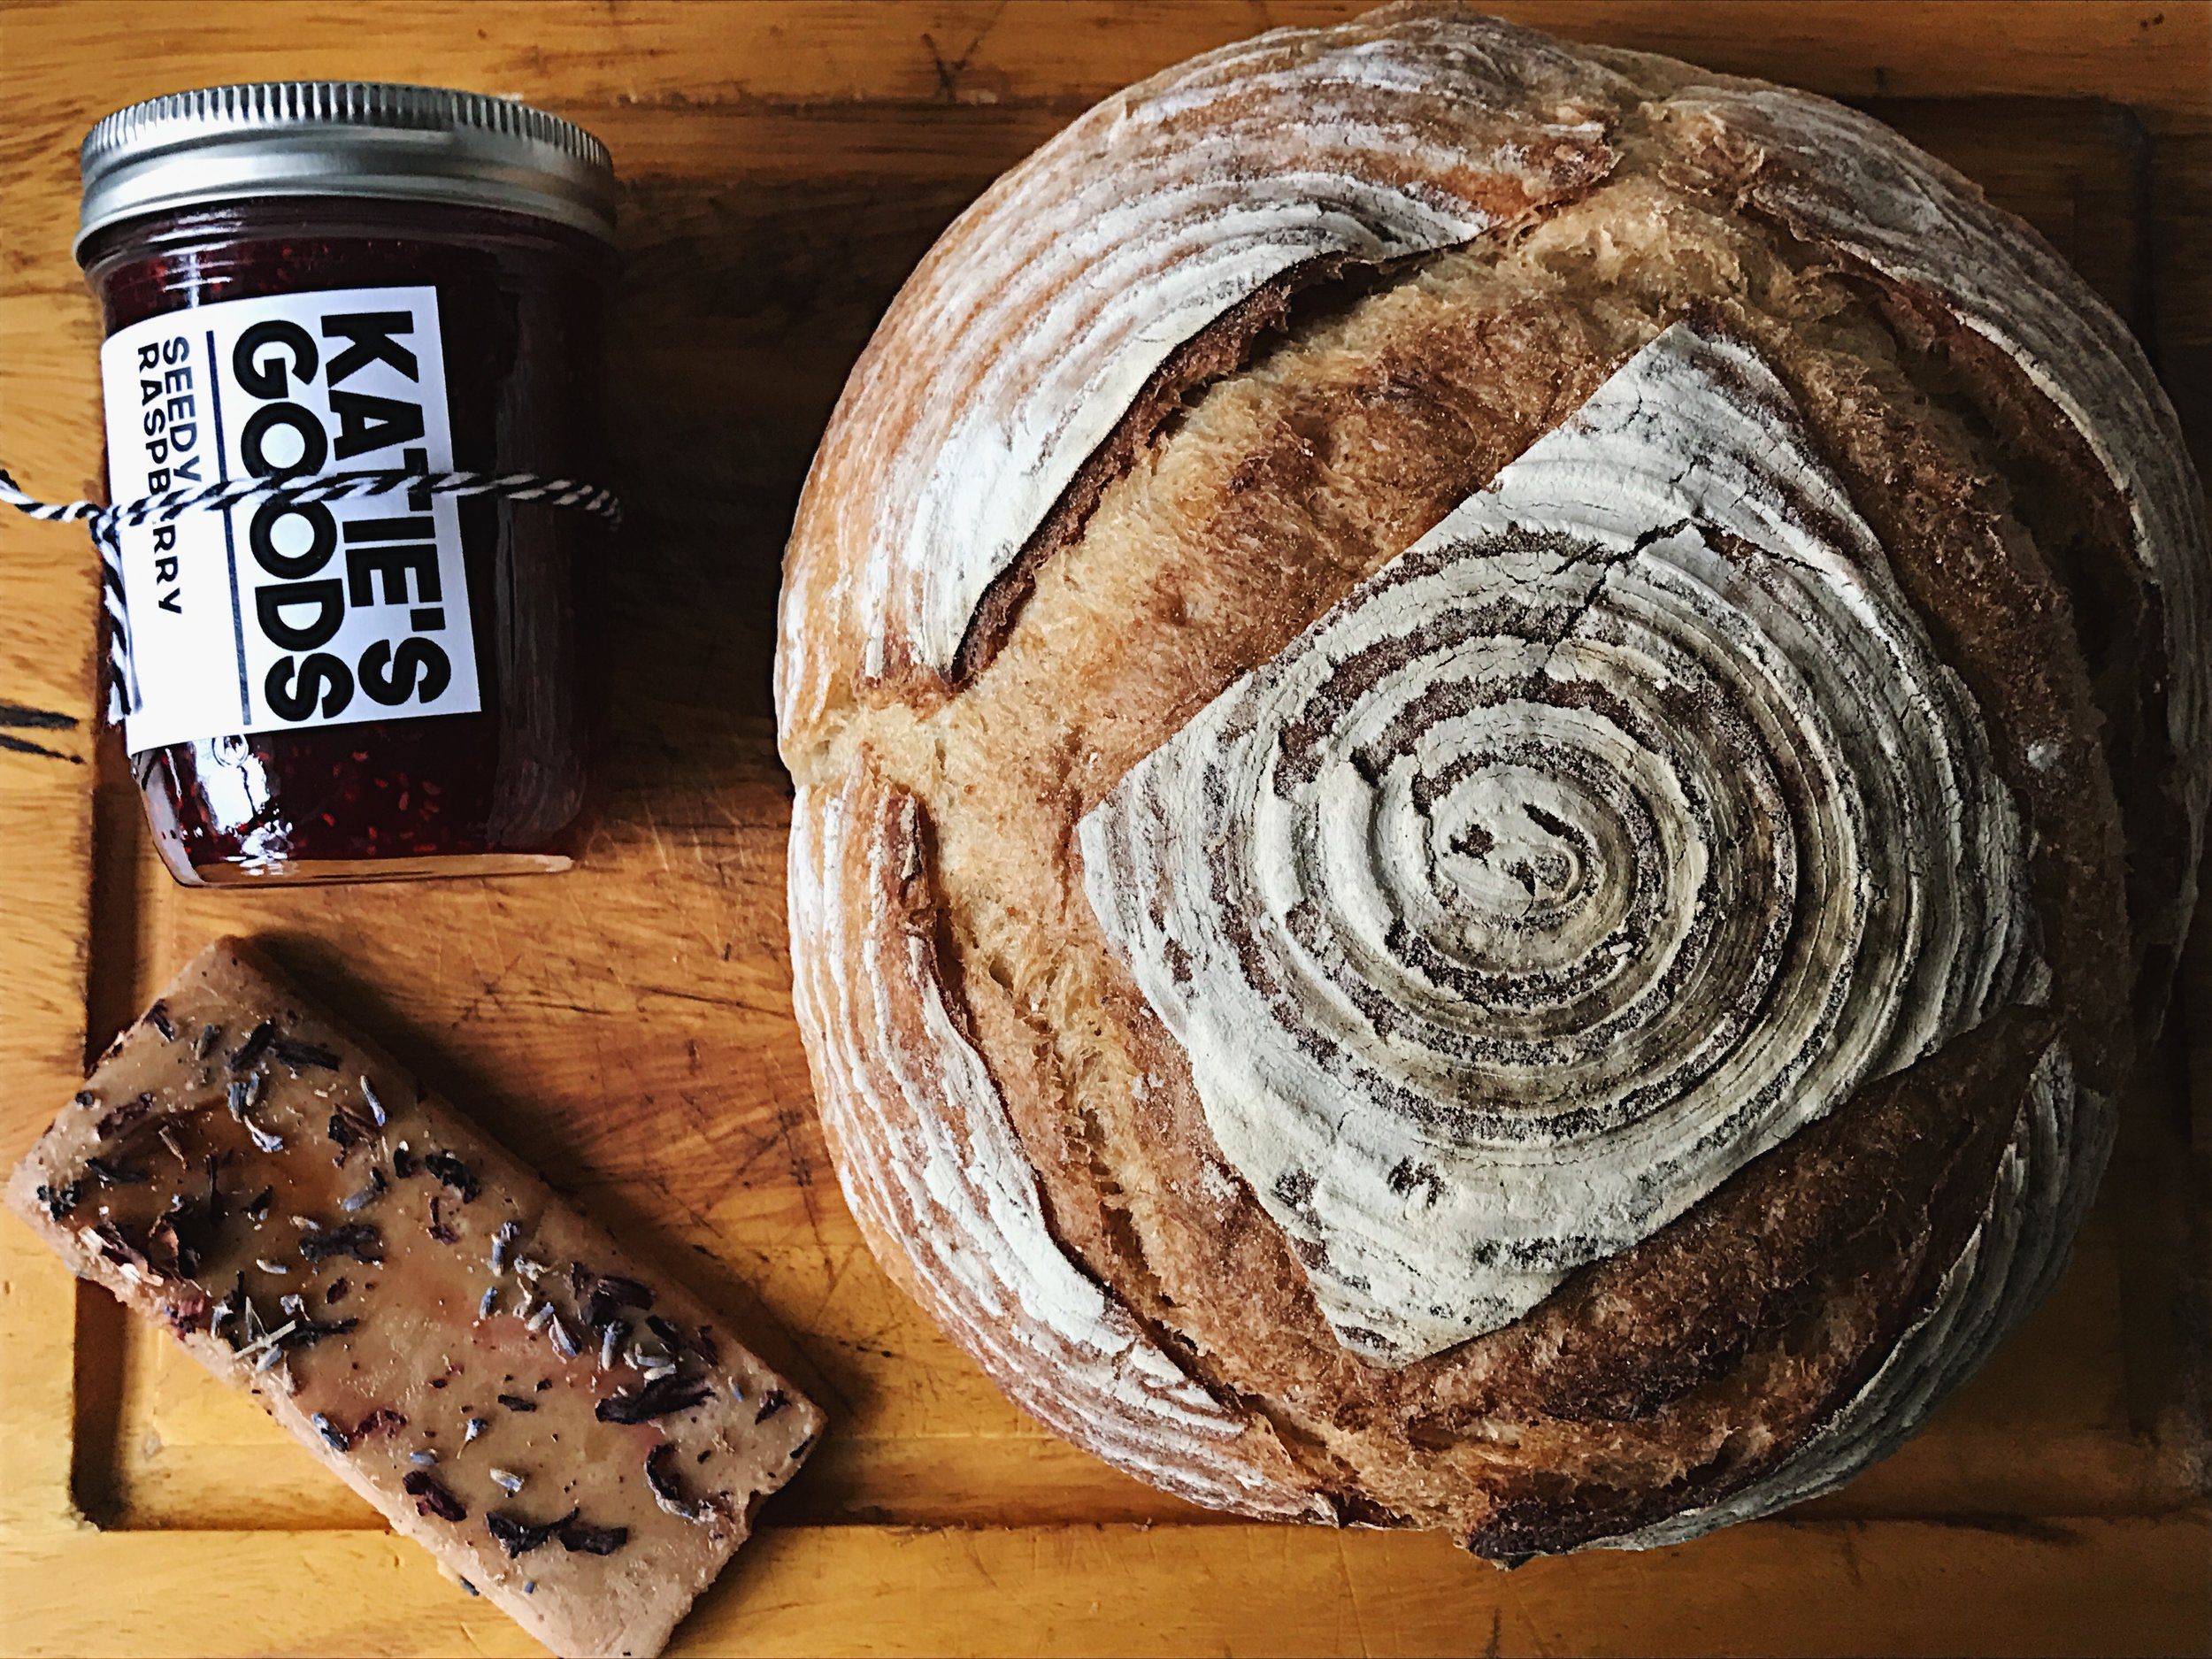 Organic sourdough loaf with  Katie's Goods  jam + toffee.